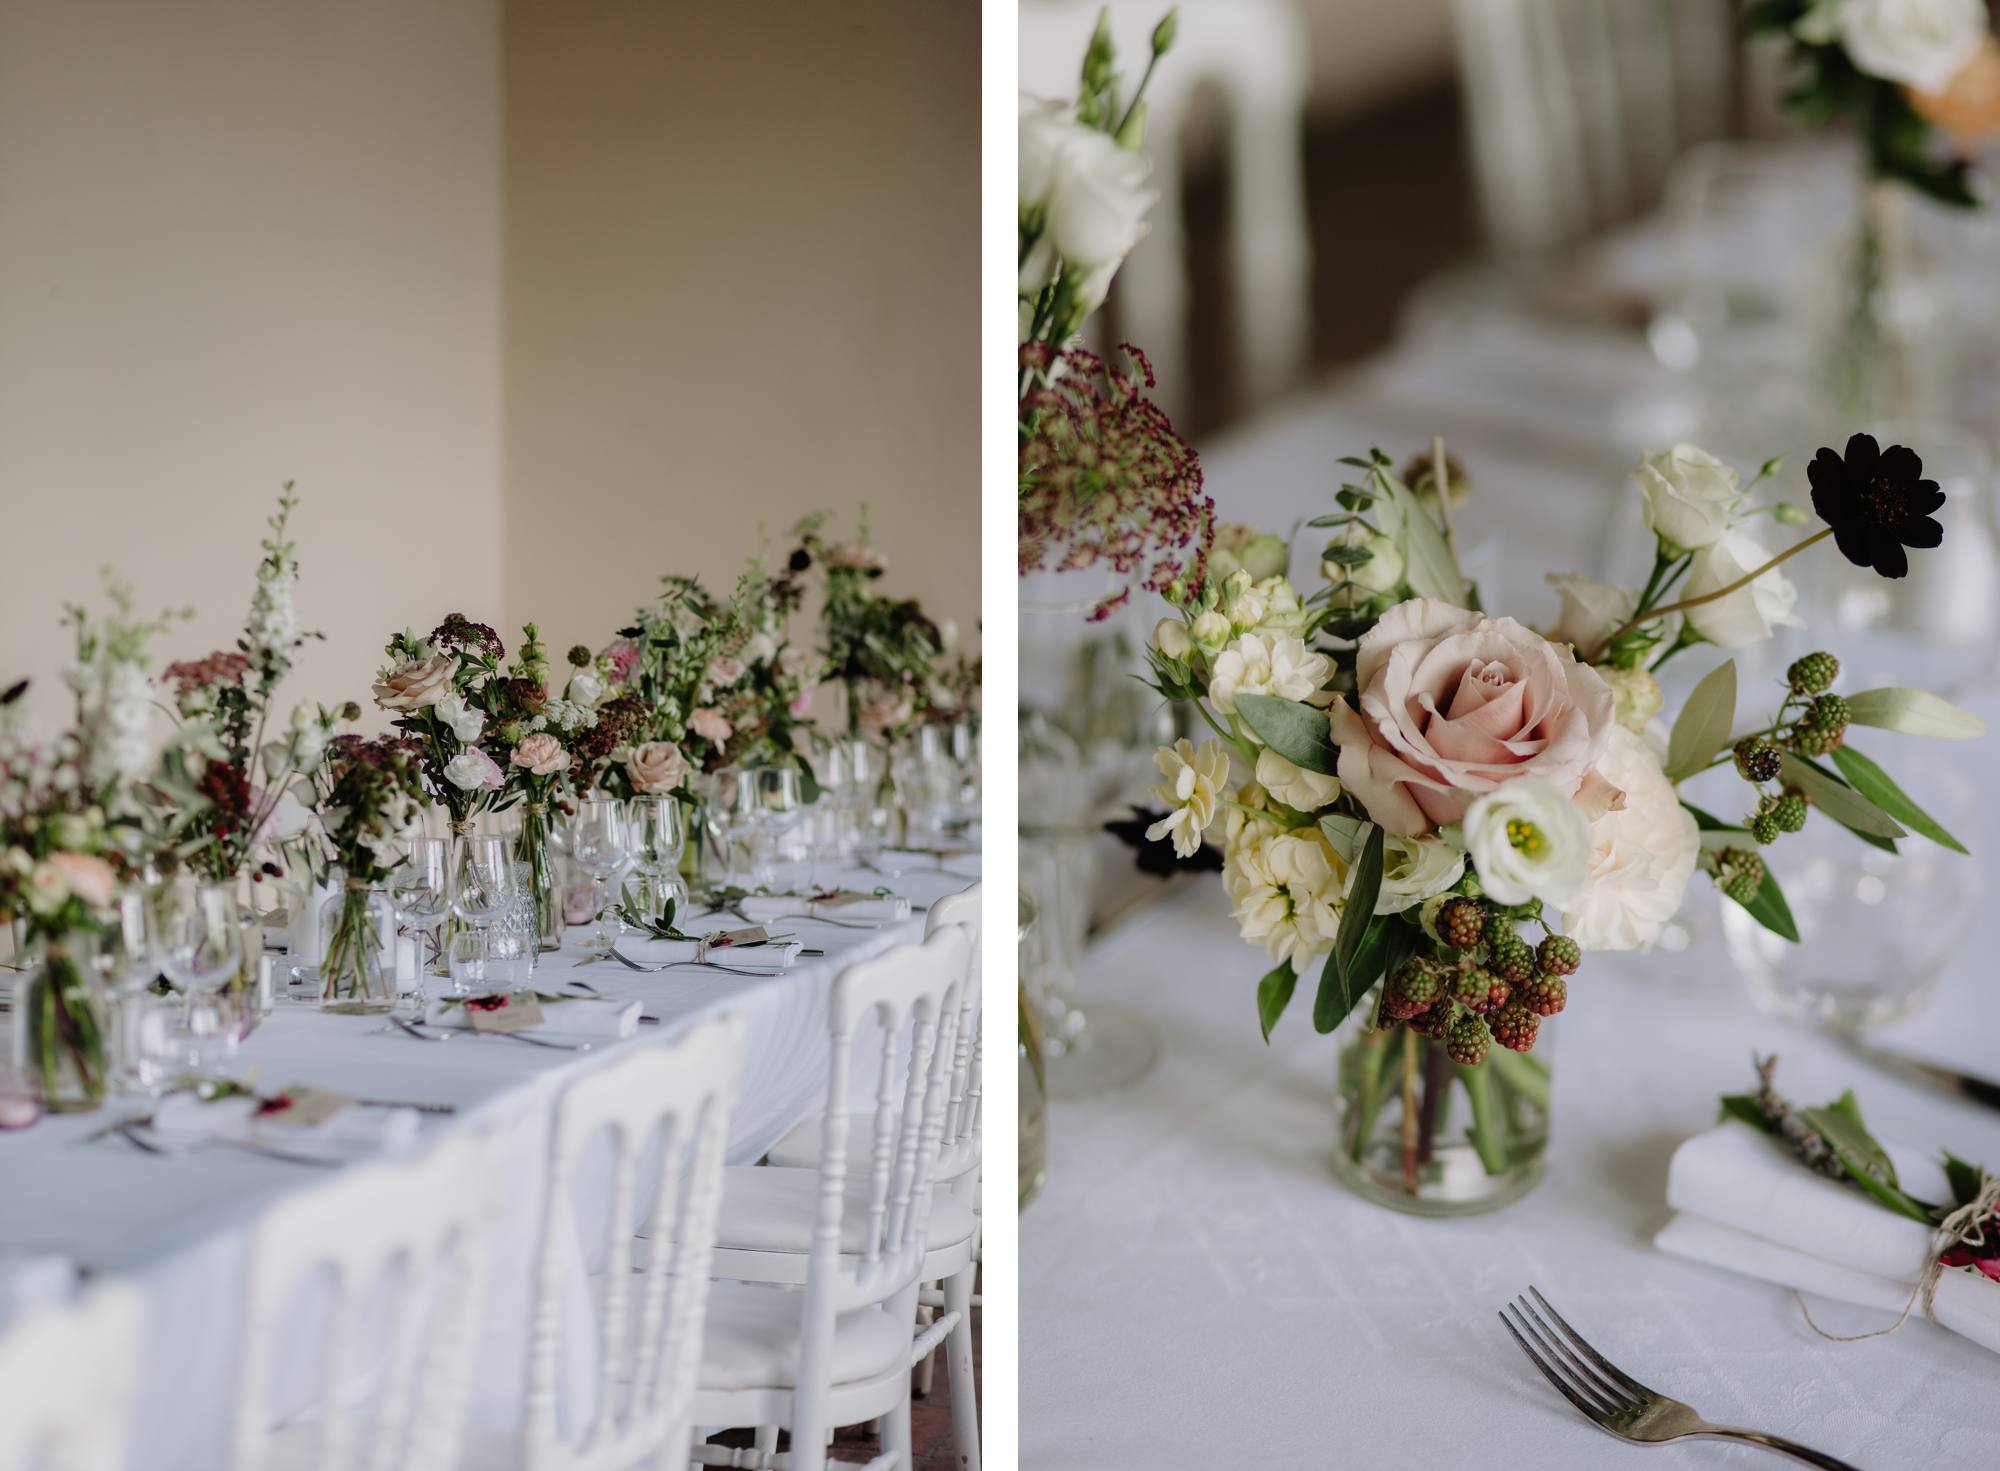 Lyon Wedding Photographer Chateau de montplaisant wedding reception menthe sauvage florist